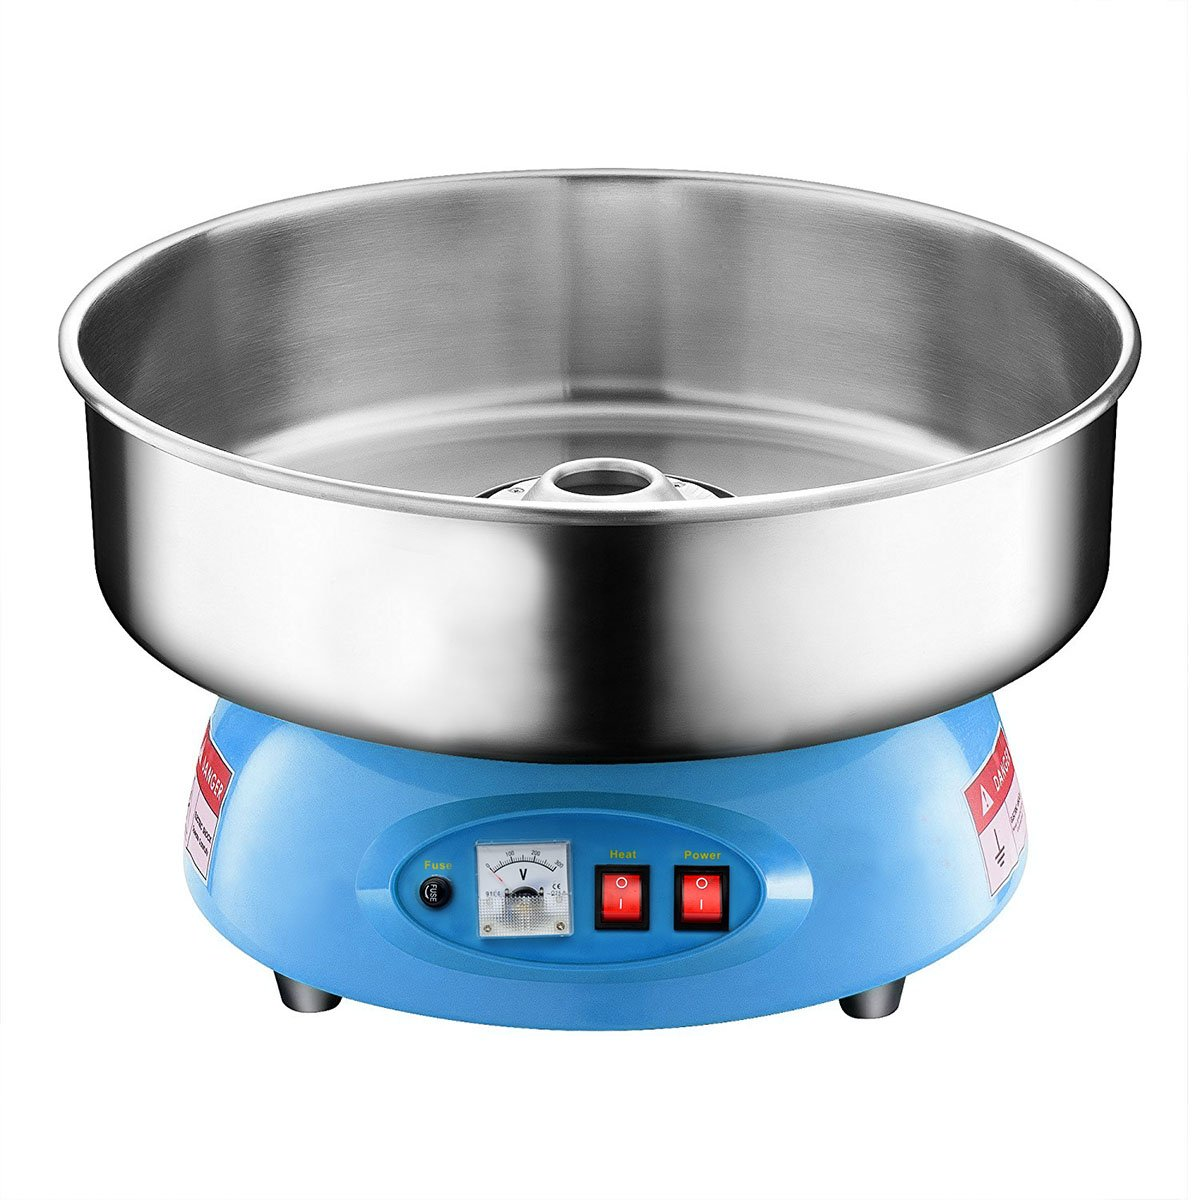 Clevr Compact Commercial Cotton Candy Machine Party Candy Floss Maker Blue by Clevr (Image #1)